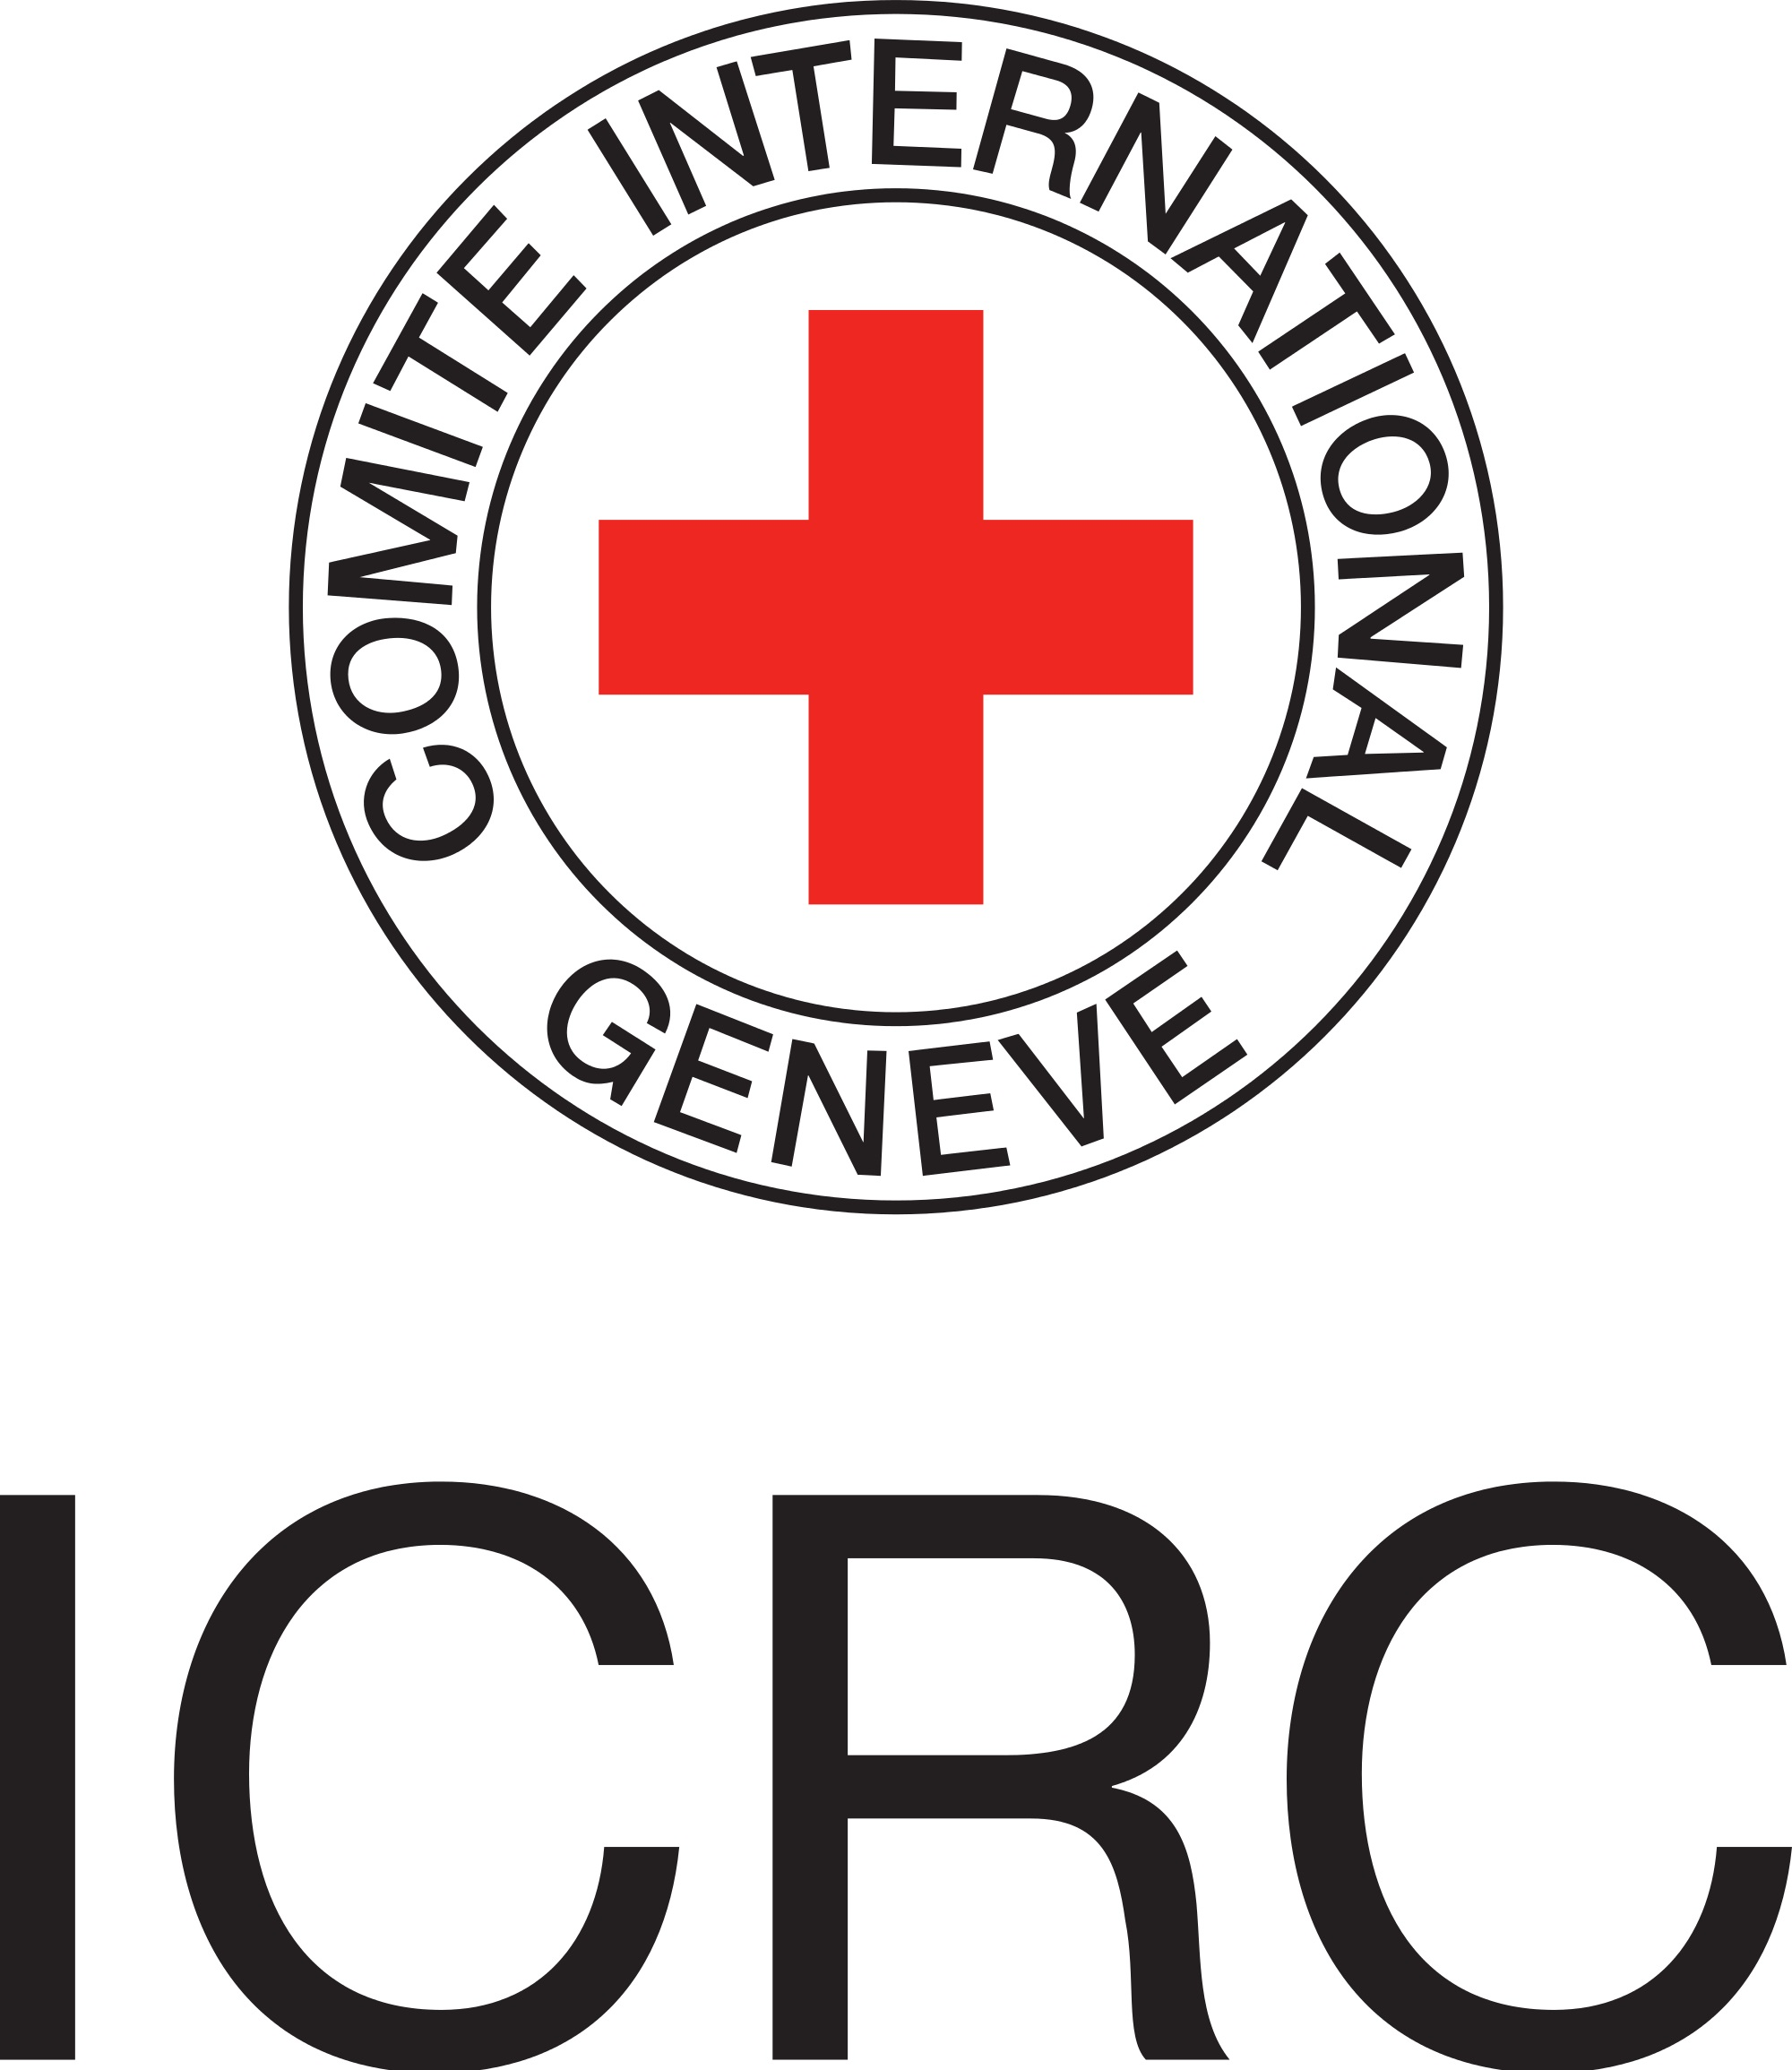 Health-care providers, patients suffer thousands of attacks on health care services the past 5 years, International Committee of the Red Cross (ICRC) data shows